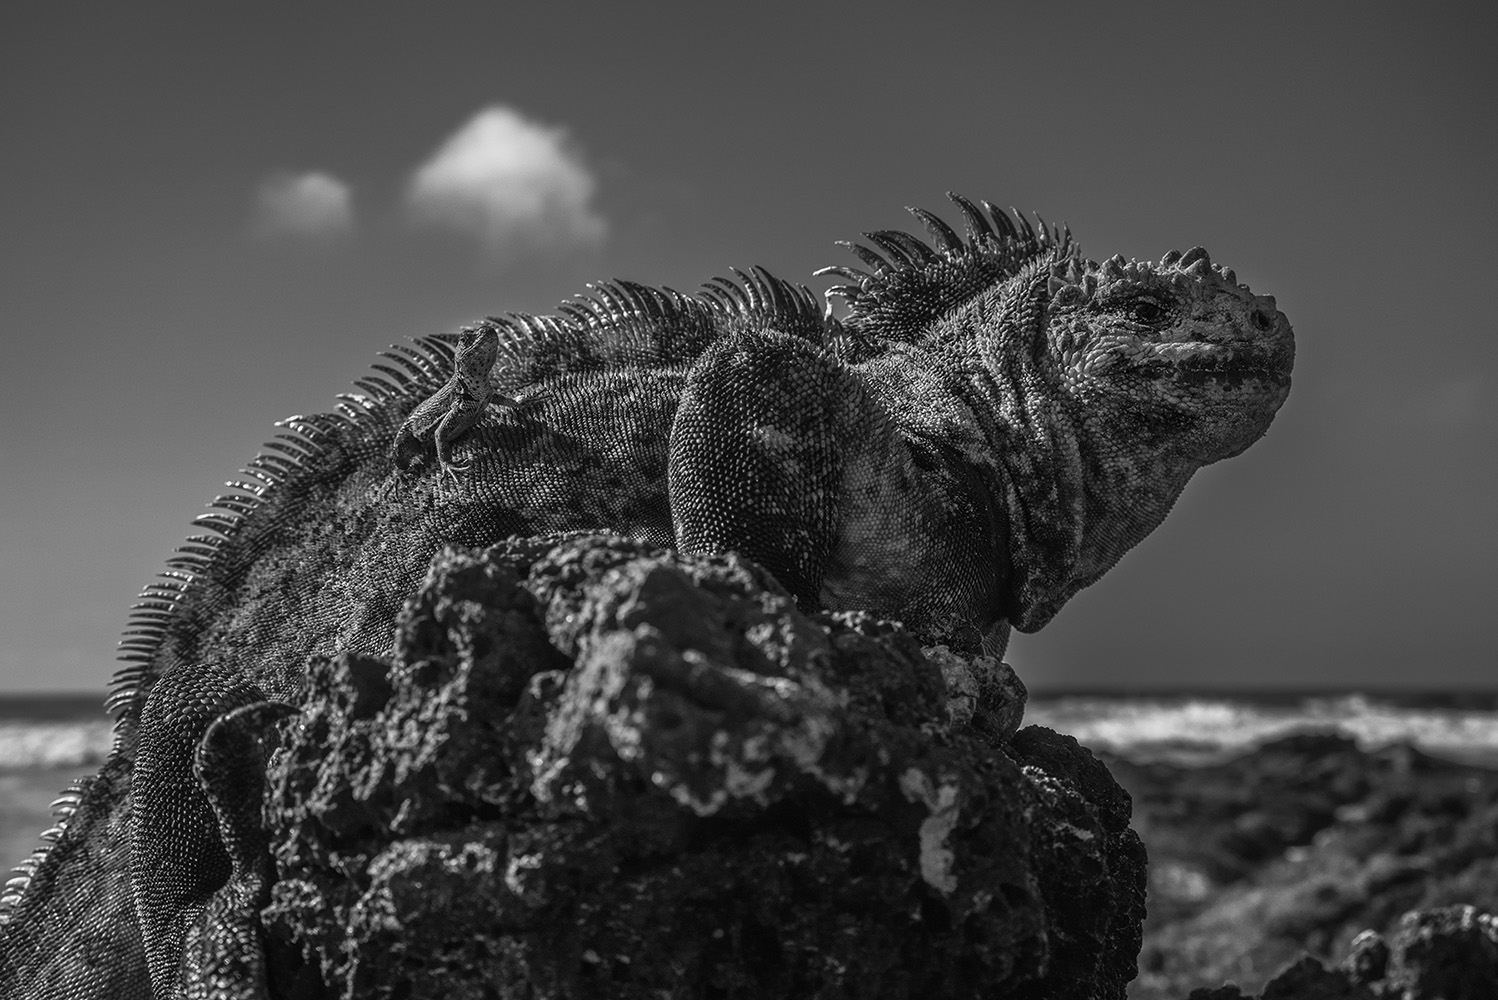 Marine iguana, Isabela Island, unique animal of the Galapagos Islands. The marine iguana (Amblyrhynchus cristatus) is an iguana found only on the Galápagos Islands. It feeds on algae and can dive over 9 meters into the water. They are the world's only sea-going lizards and must warm its body in the sun after swimming in cold ocean waters, because reptiles do not have the ability to thermoregulate. The average lenght of an adult male is 1.3 meters and the weight up to 13kg.